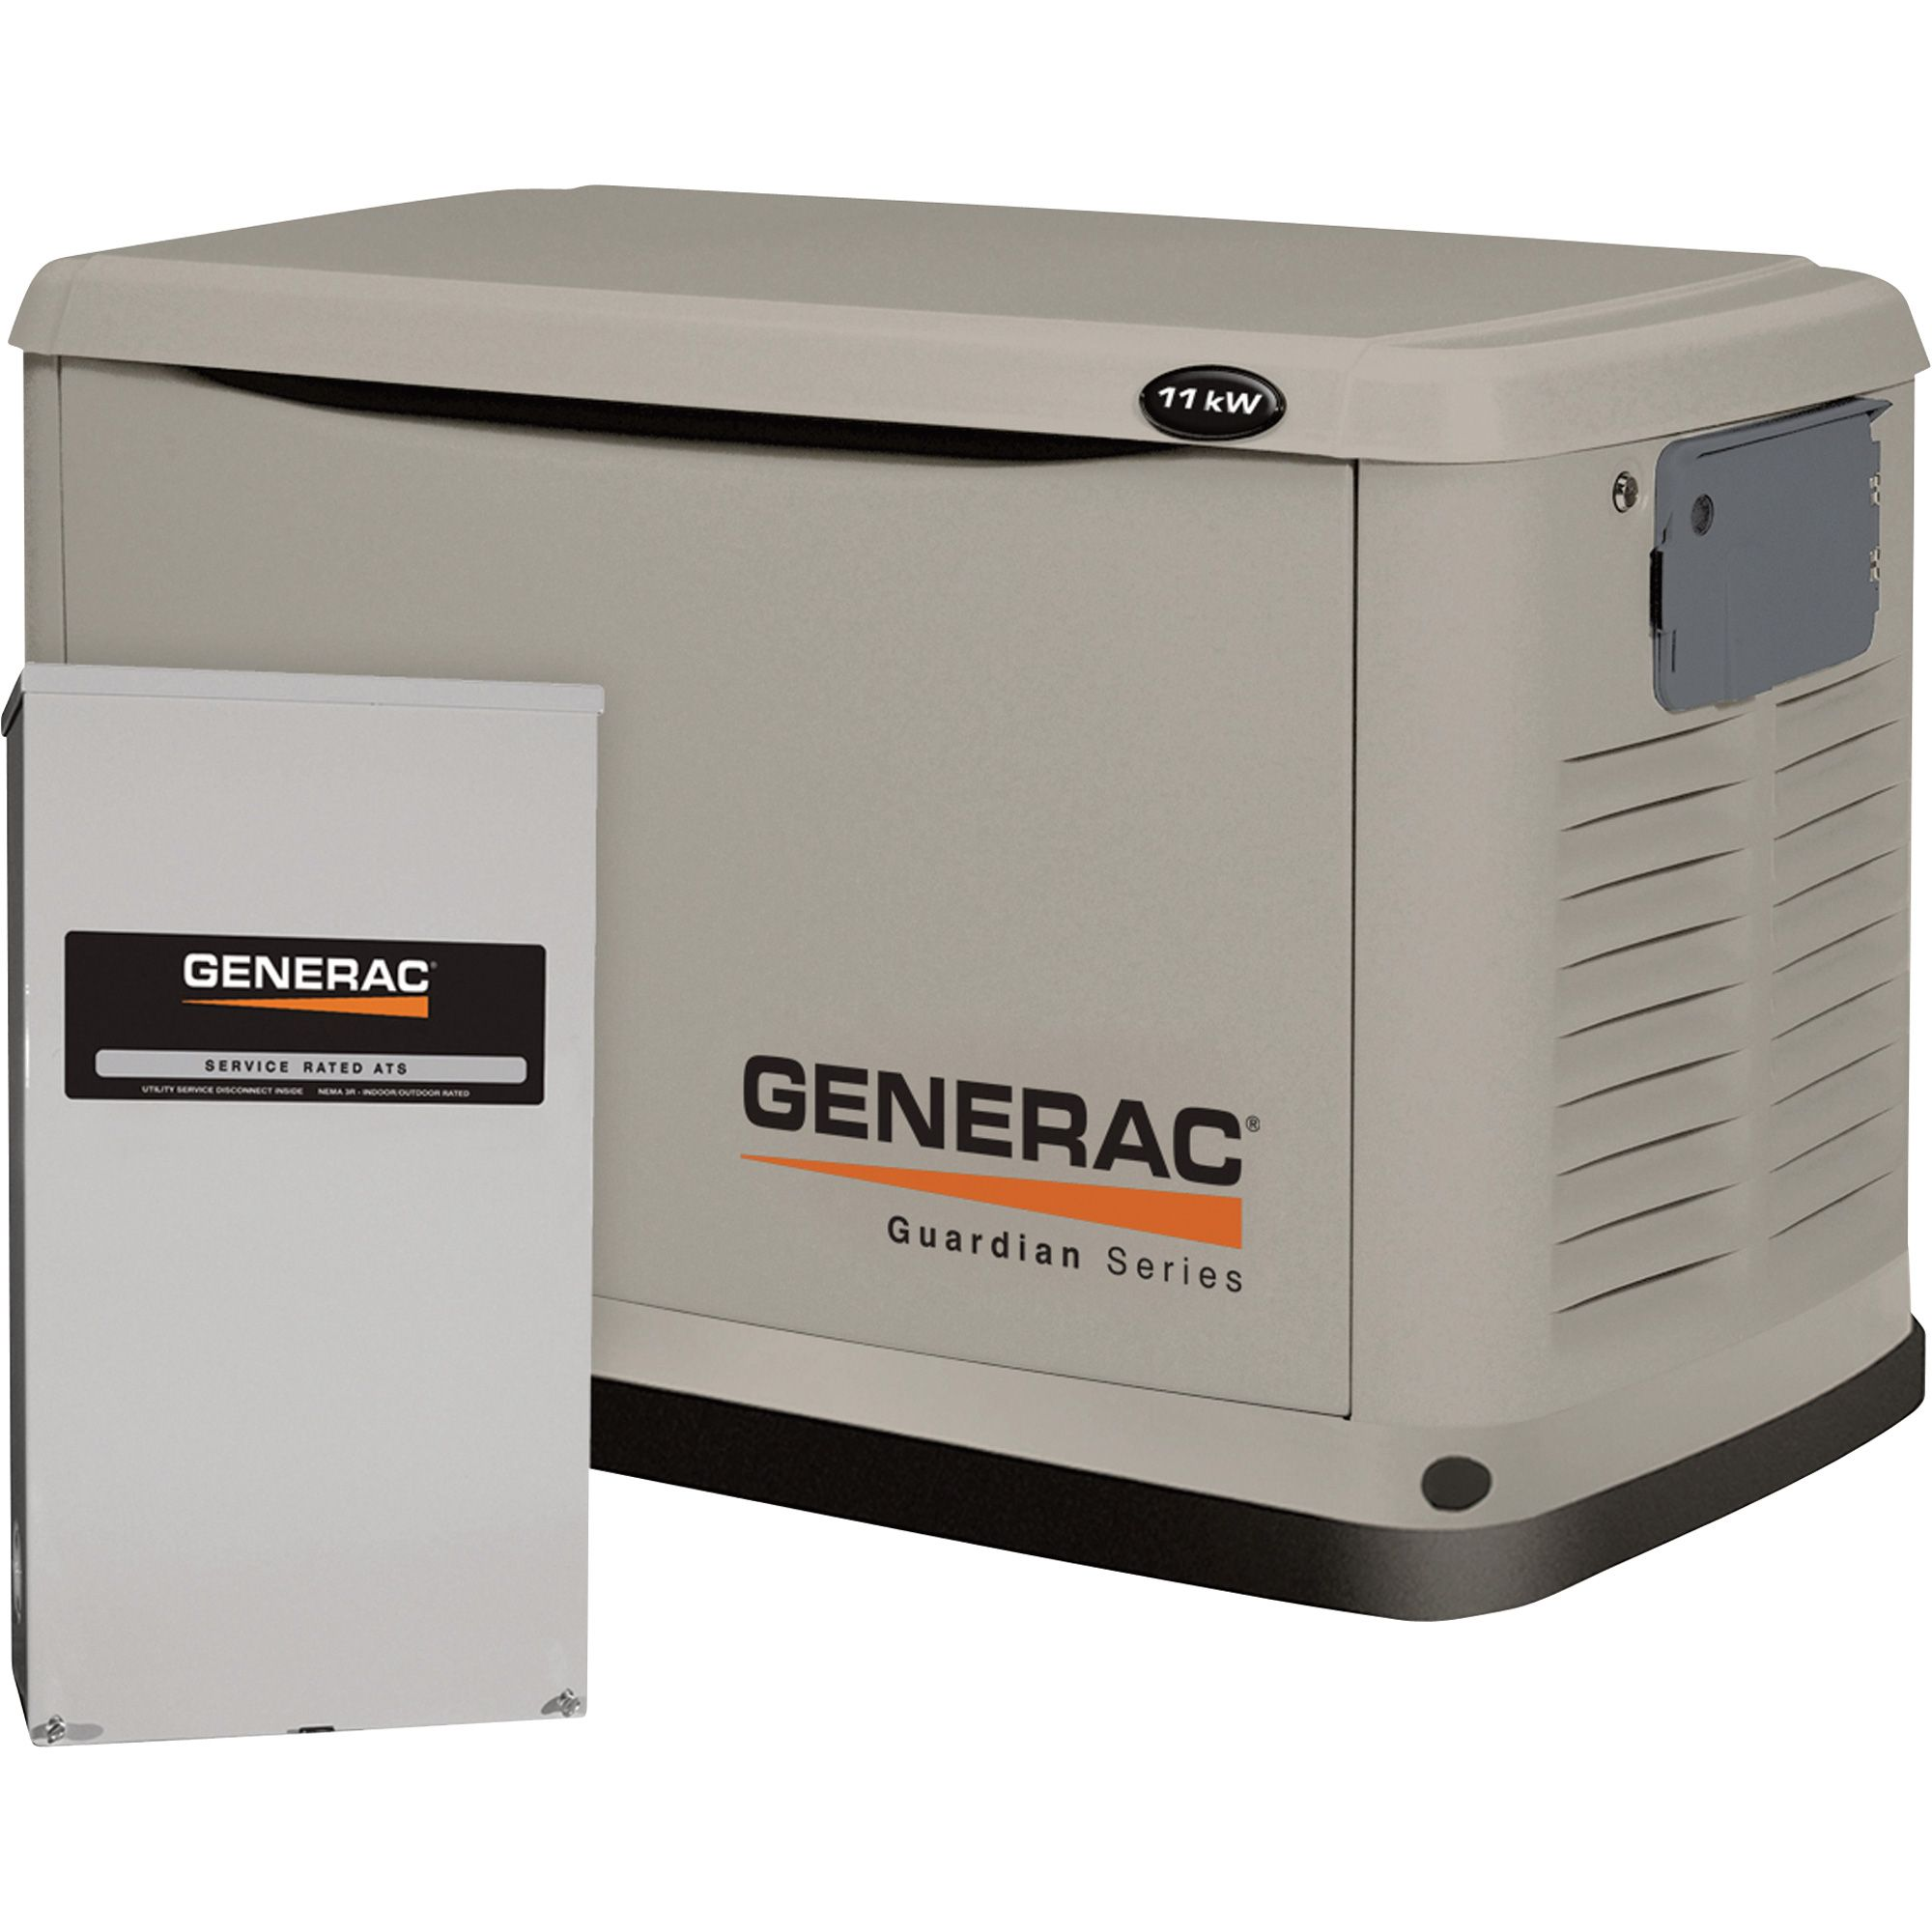 free shipping generac guardian air cooled standby generator 11kw lp 10kw ng 200 amp service rated smart switch model 6438 residential standby  [ 2000 x 2000 Pixel ]